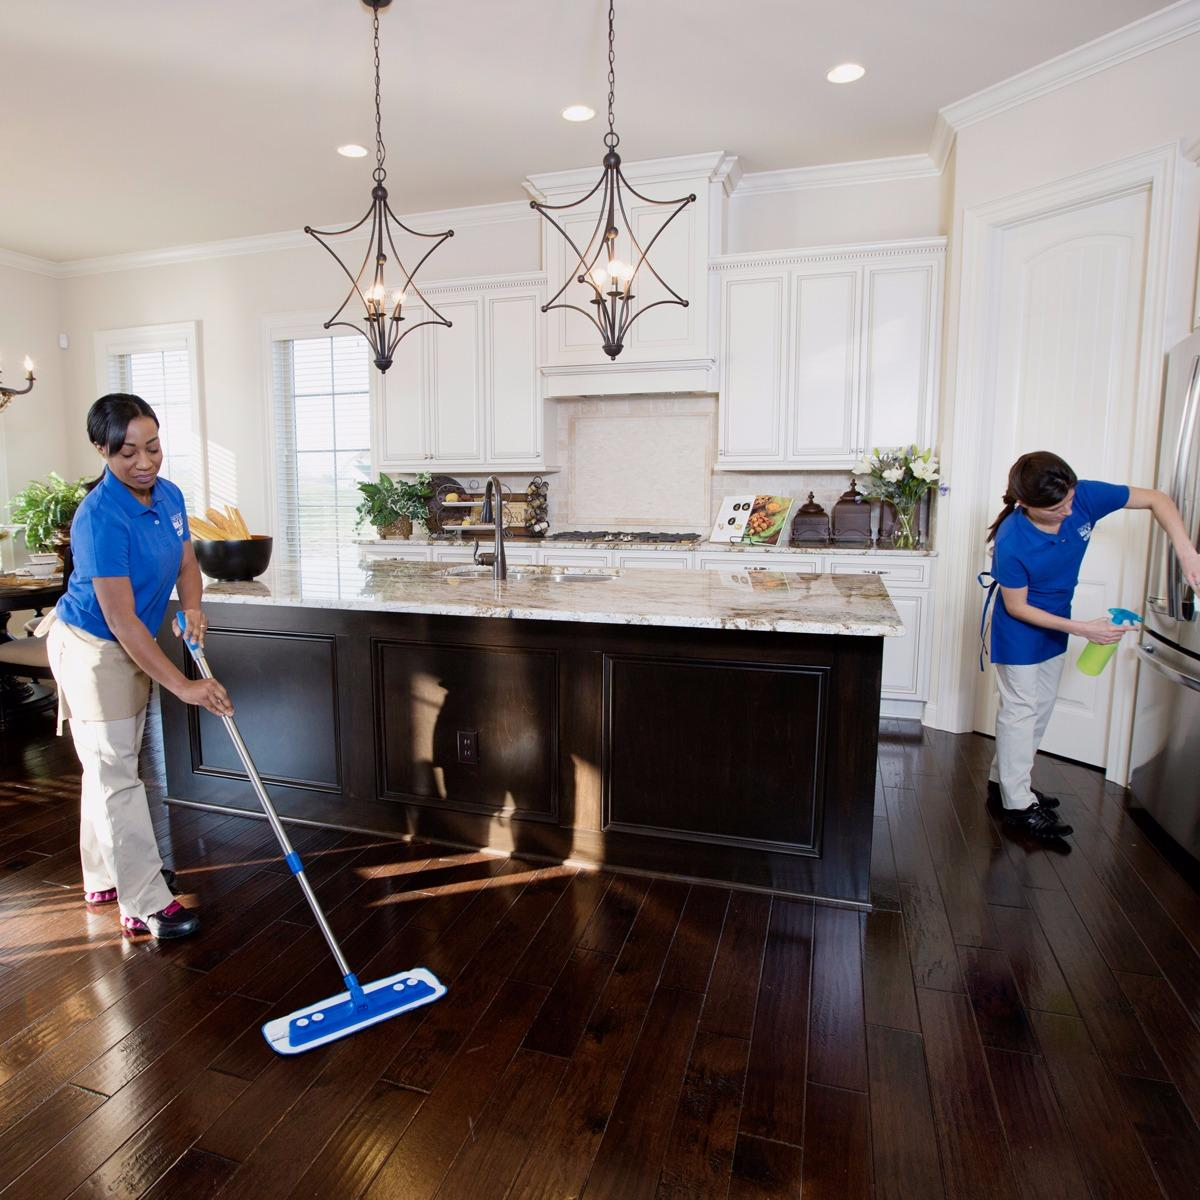 Sears Maid Services image 5